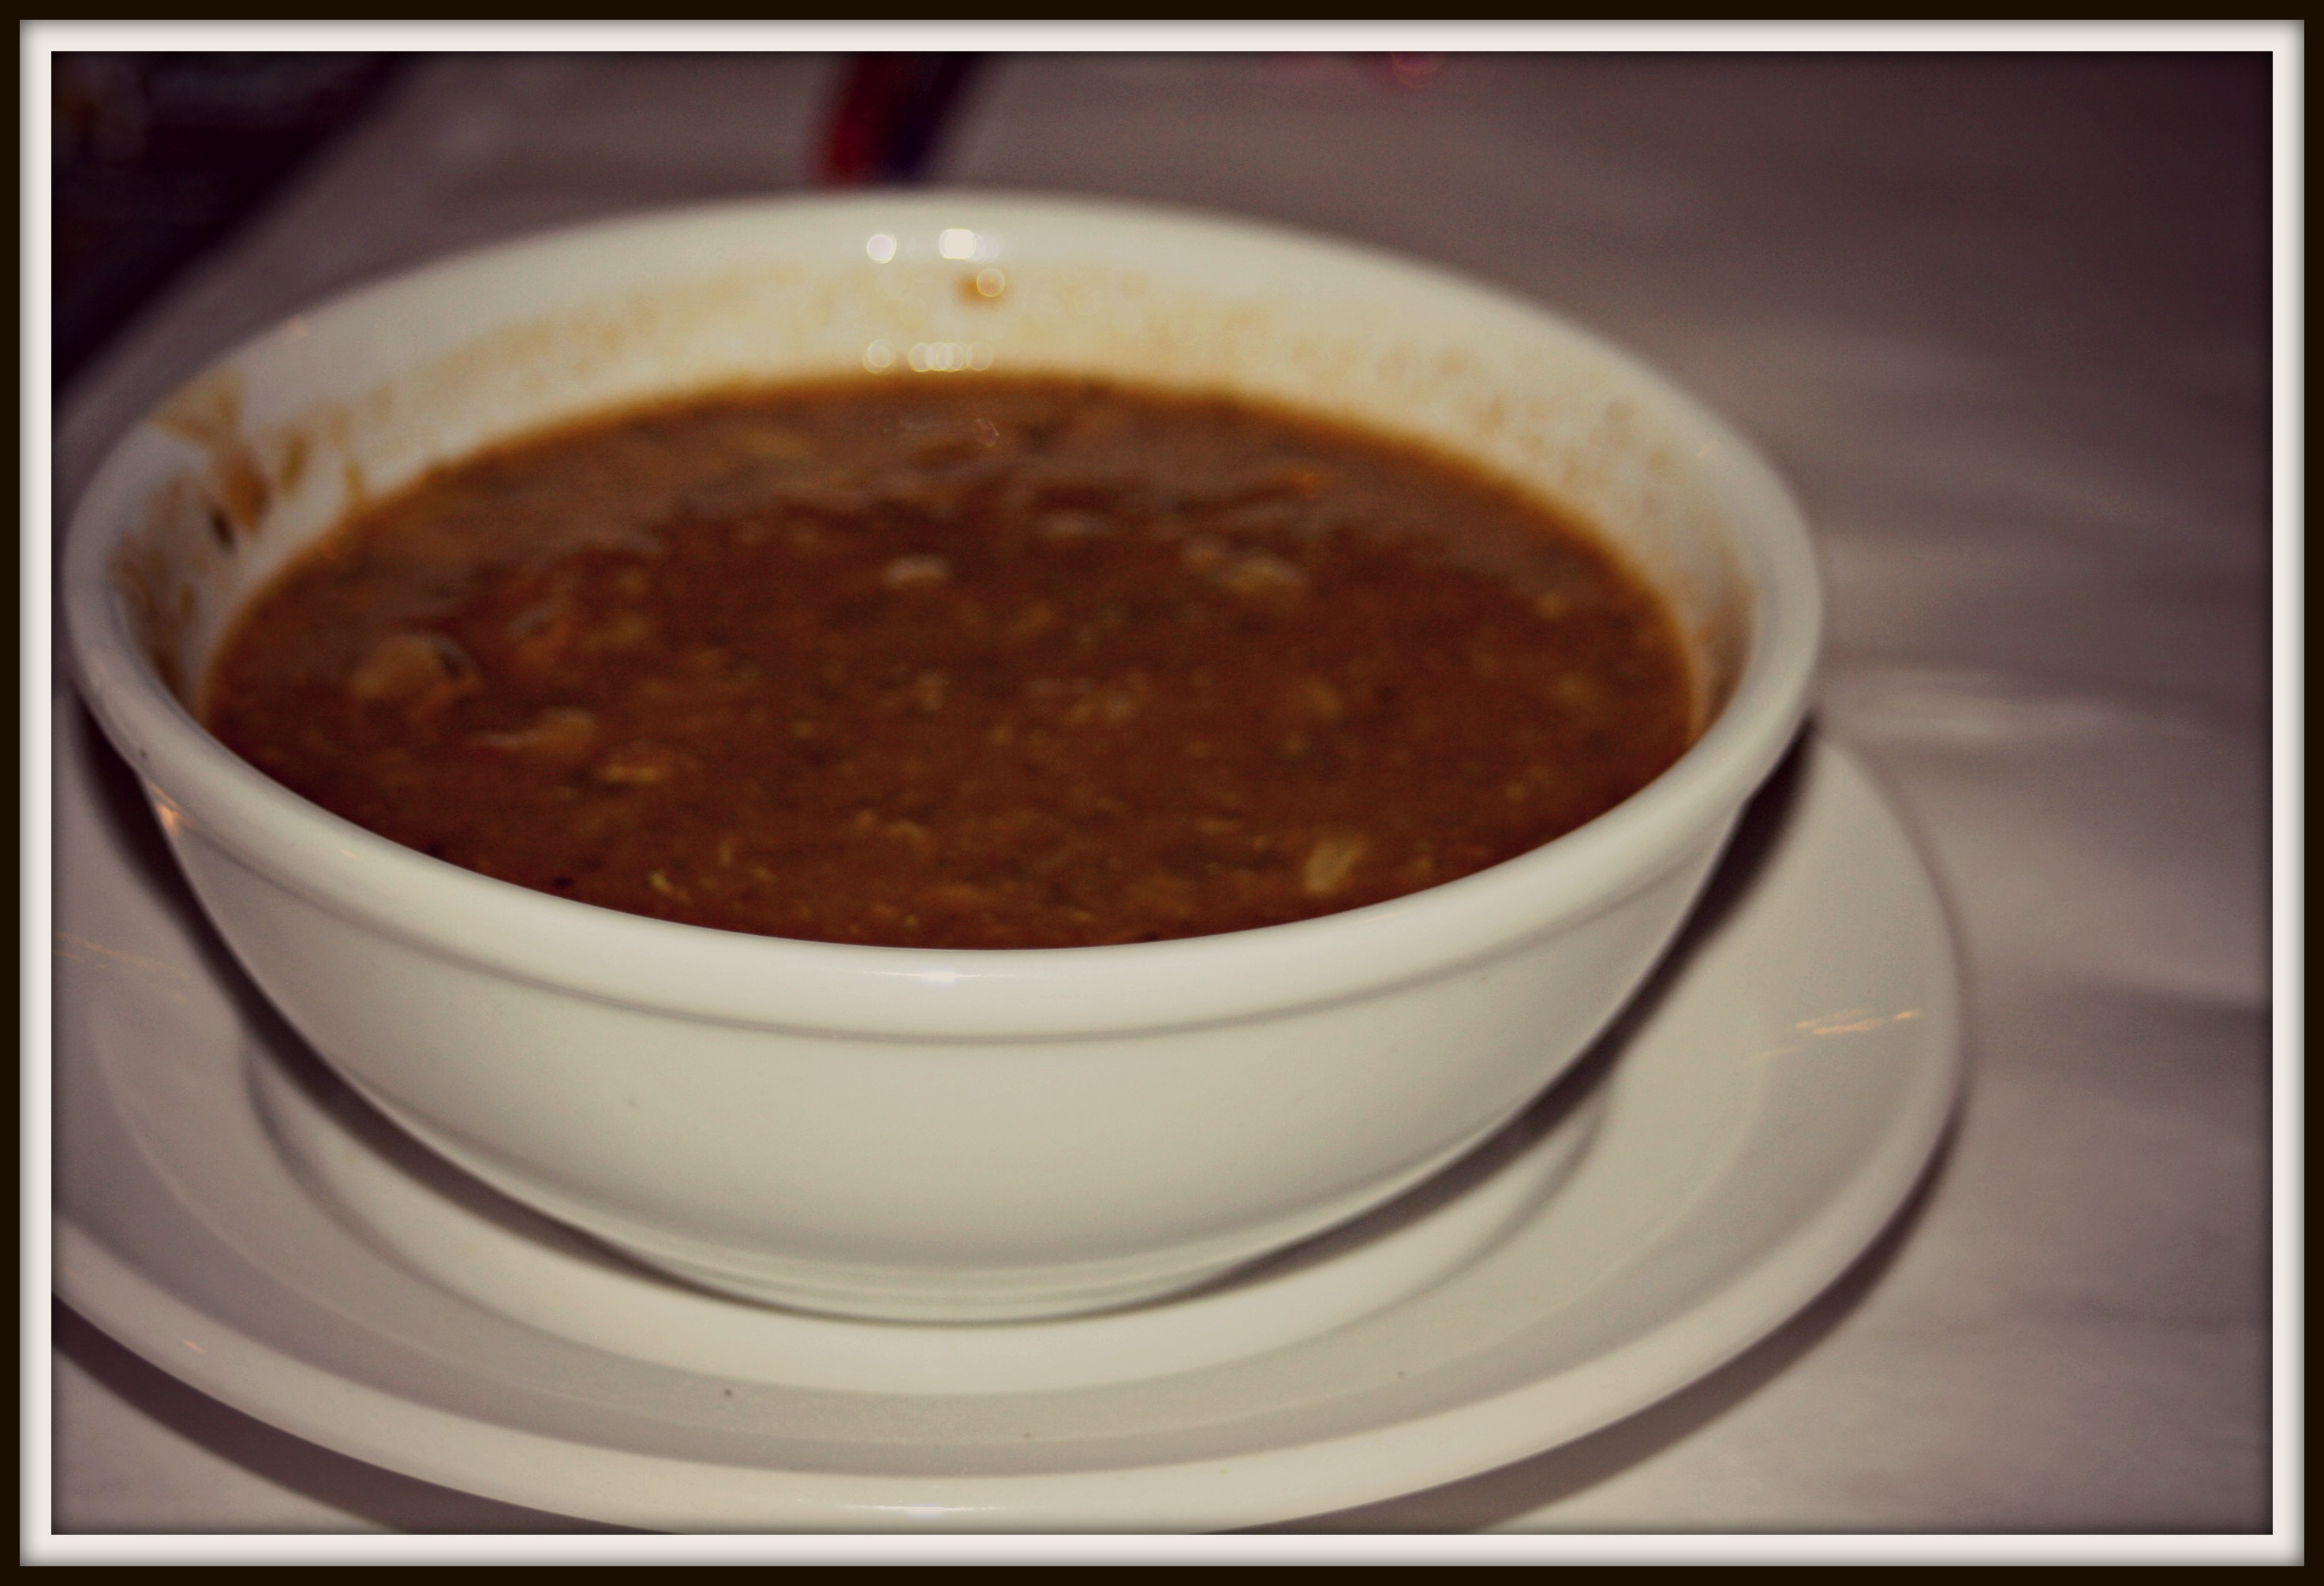 This is the bowl of Harira Soup that was served to us at the restaurant.